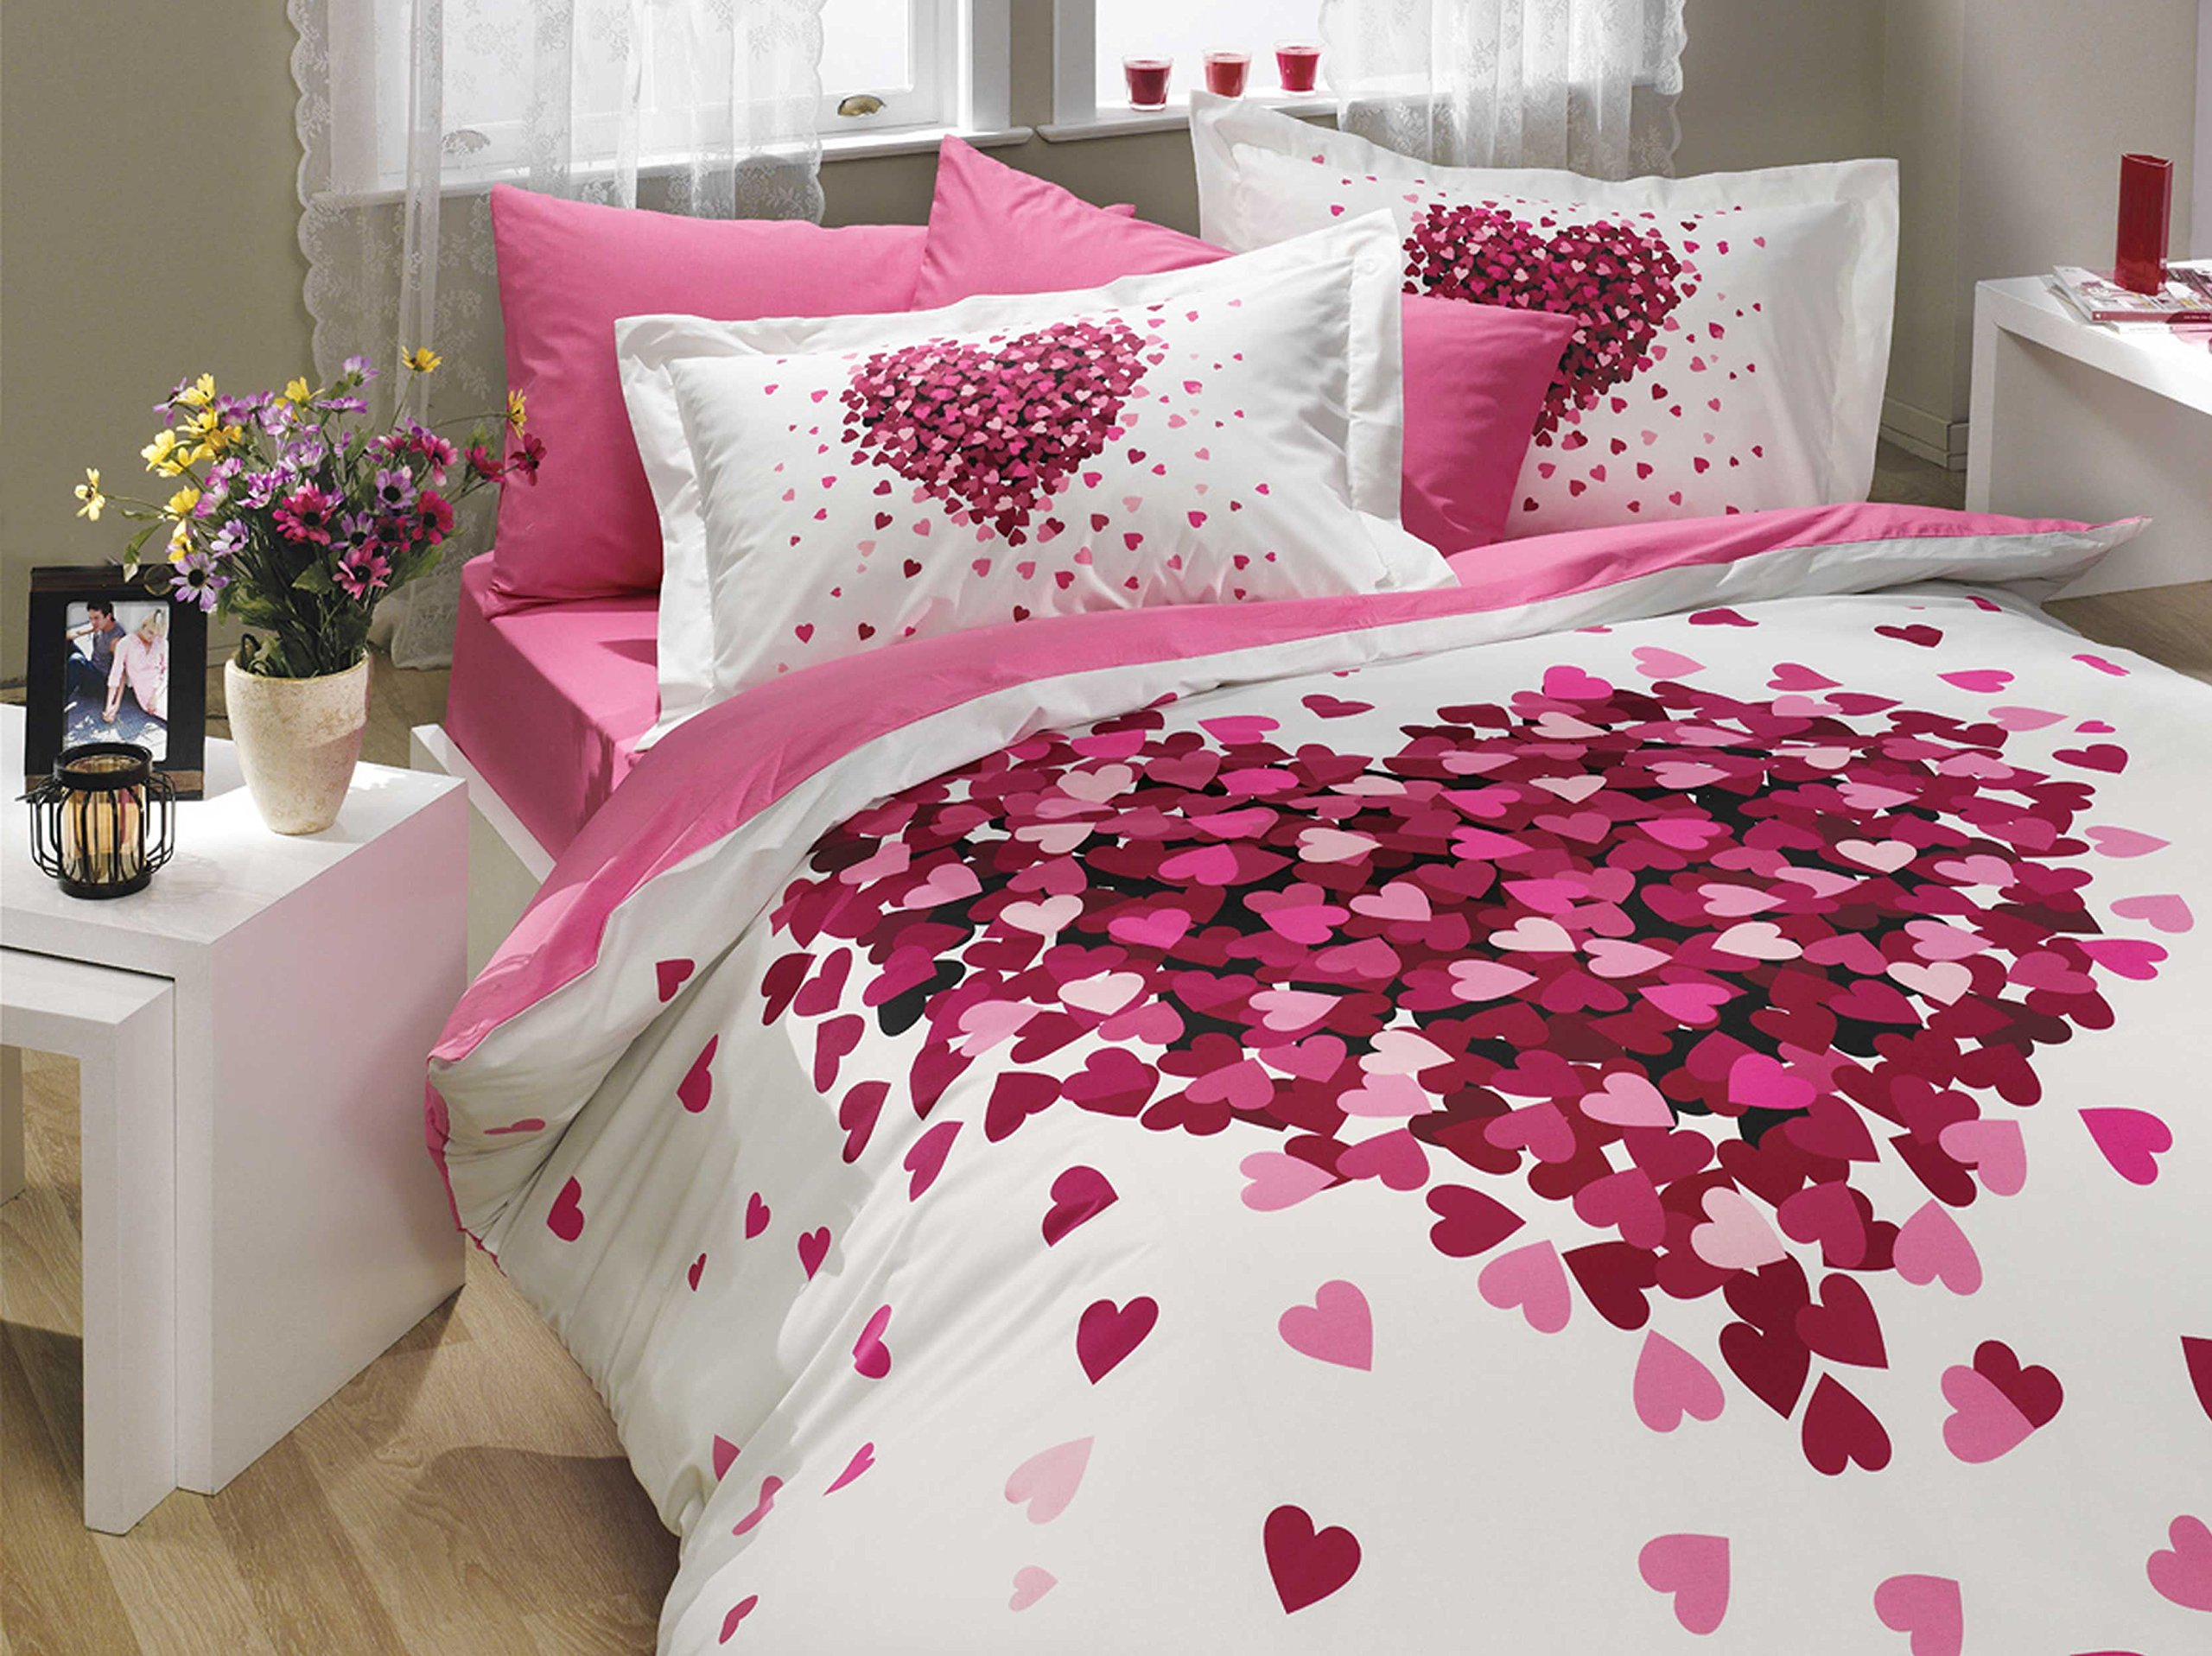 Bedding Set Heart Love Themed with Cotton Duvet Cover Romantic Design, Twin Size - 3 Pieces, Pink Lilac White